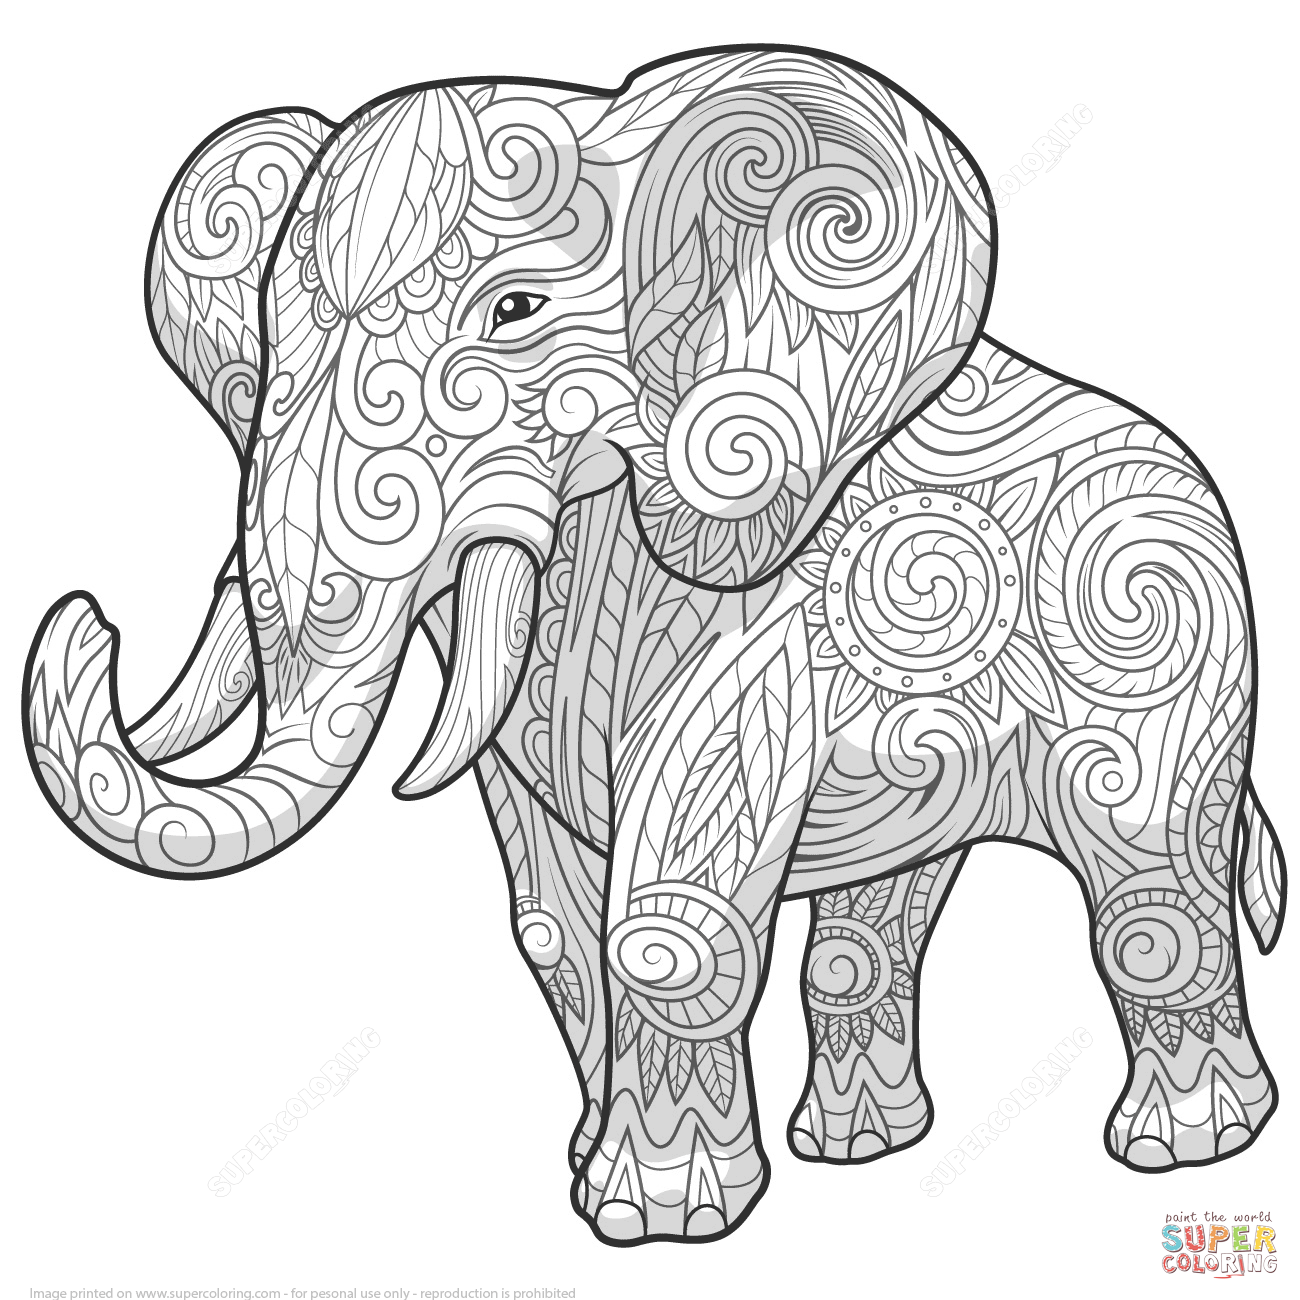 Detailed Elephant Coloring Pages Elephant Coloring Page Mandala Coloring Pages Animal Coloring Pages